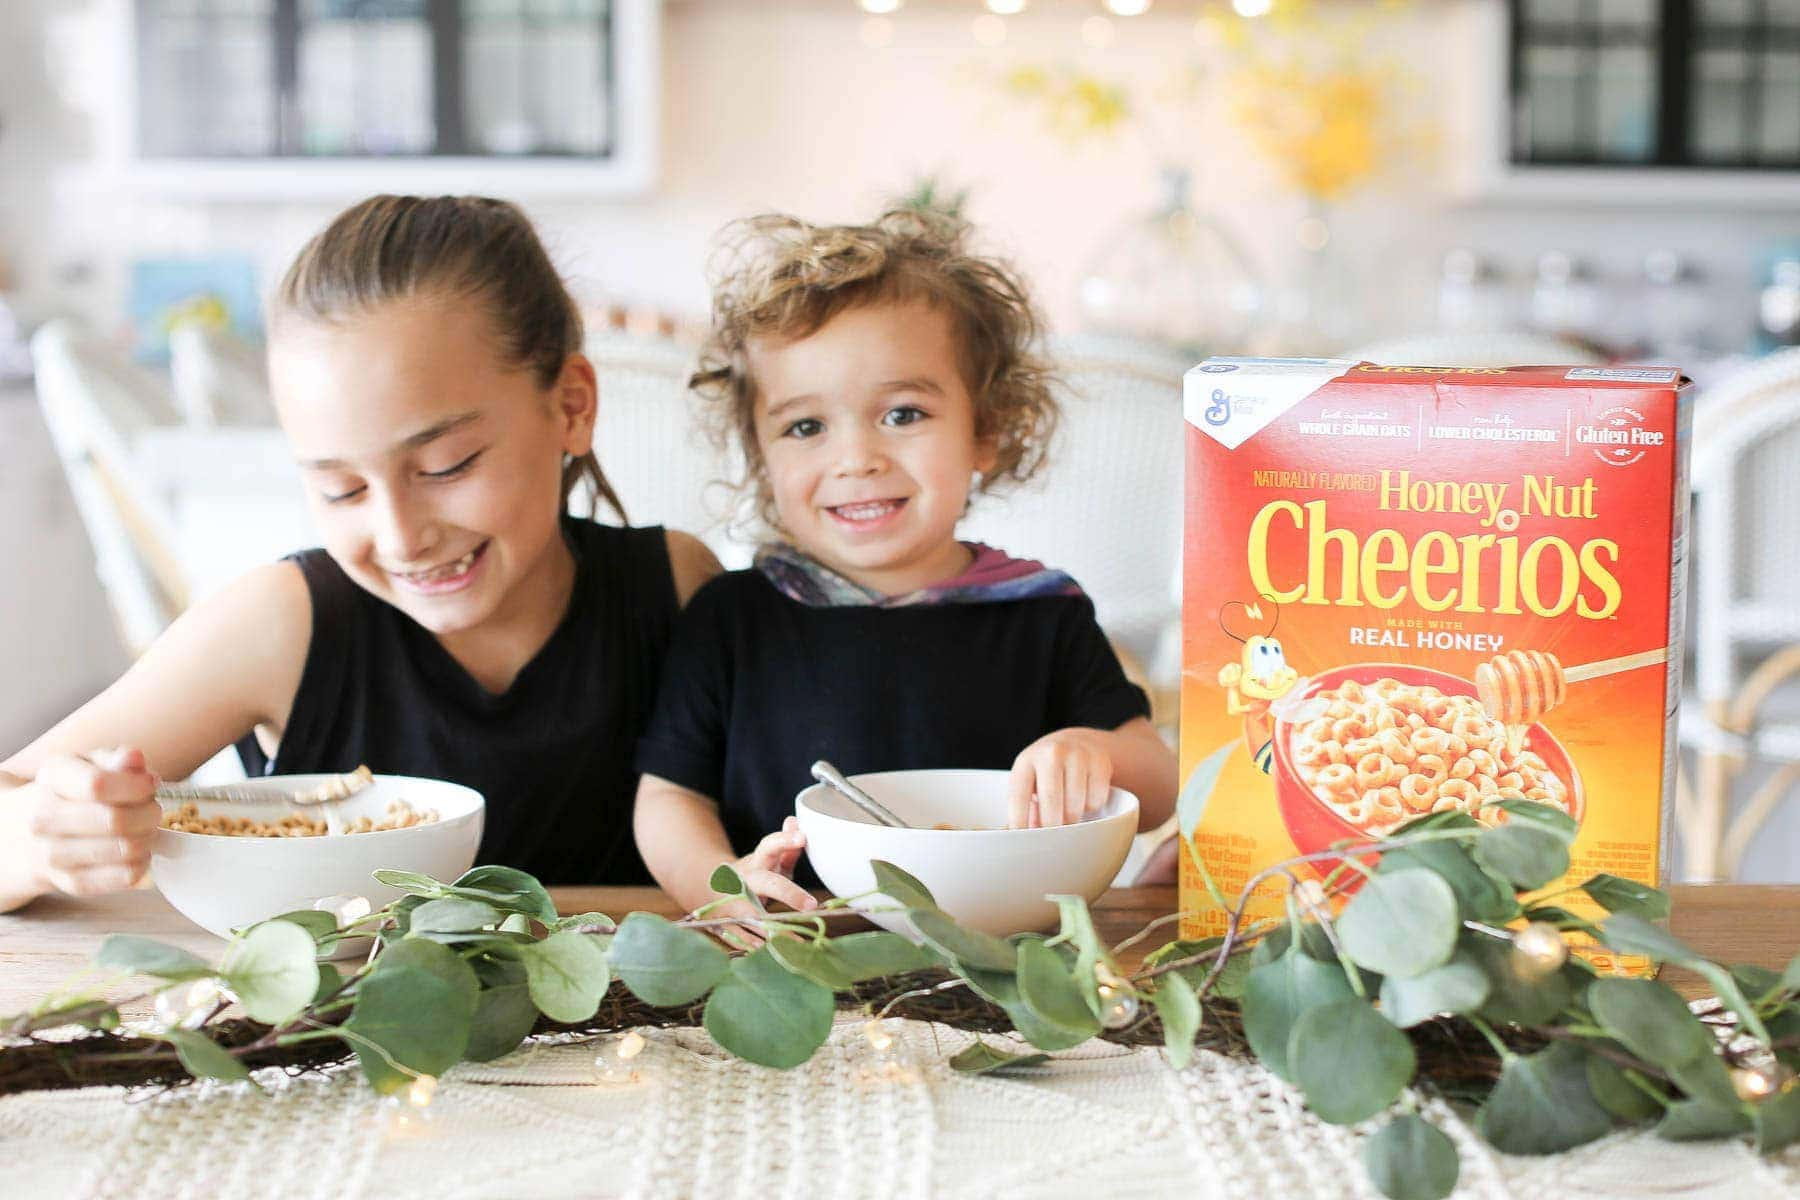 Children enjoying Honey Nut Cheerios for breakfast